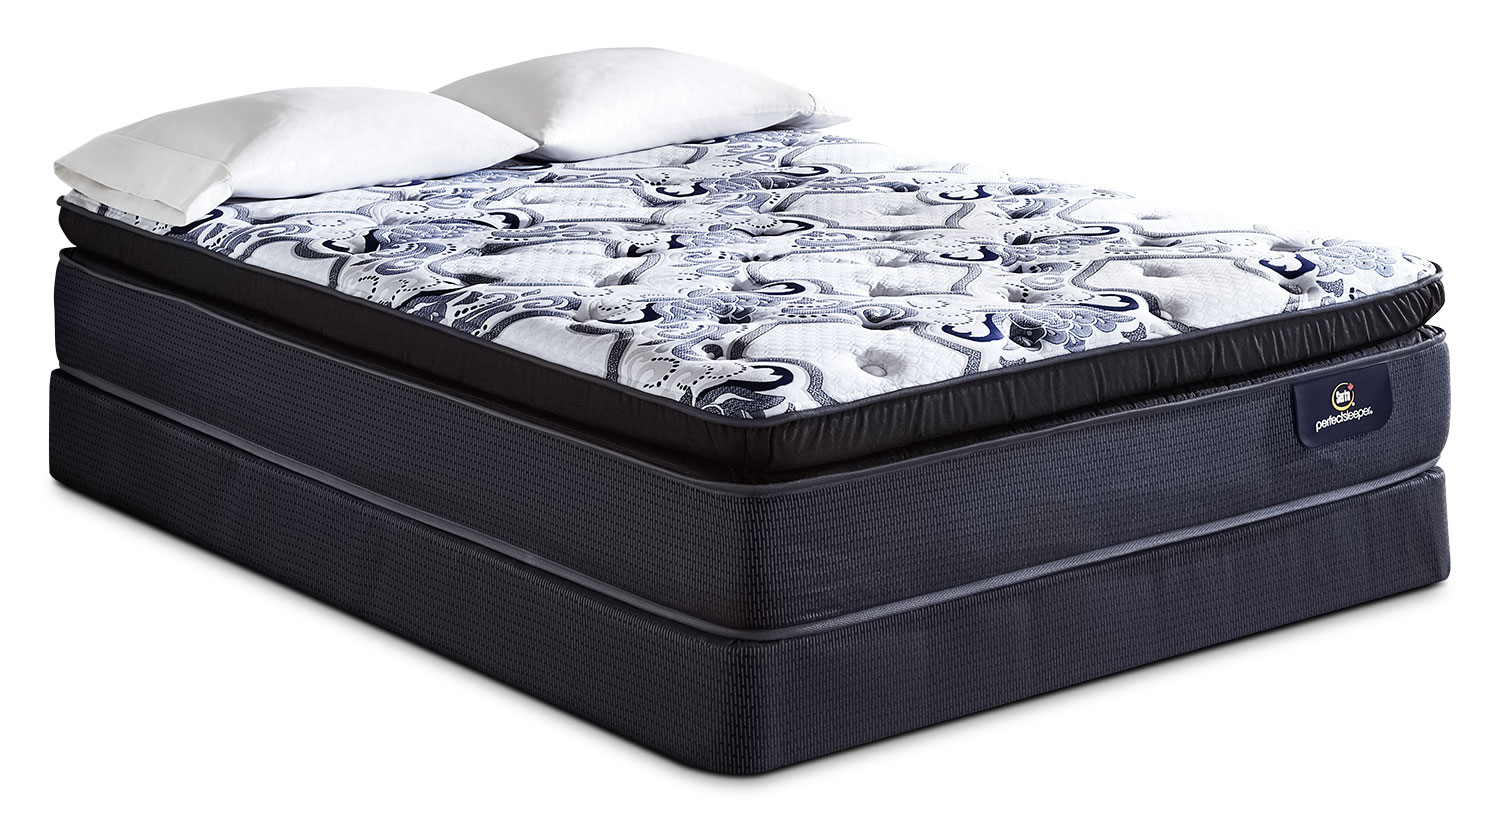 Icomfort Mattress Reviews >> Serta Indiana Plush Pillowtop - Mattress Reviews | GoodBed.com